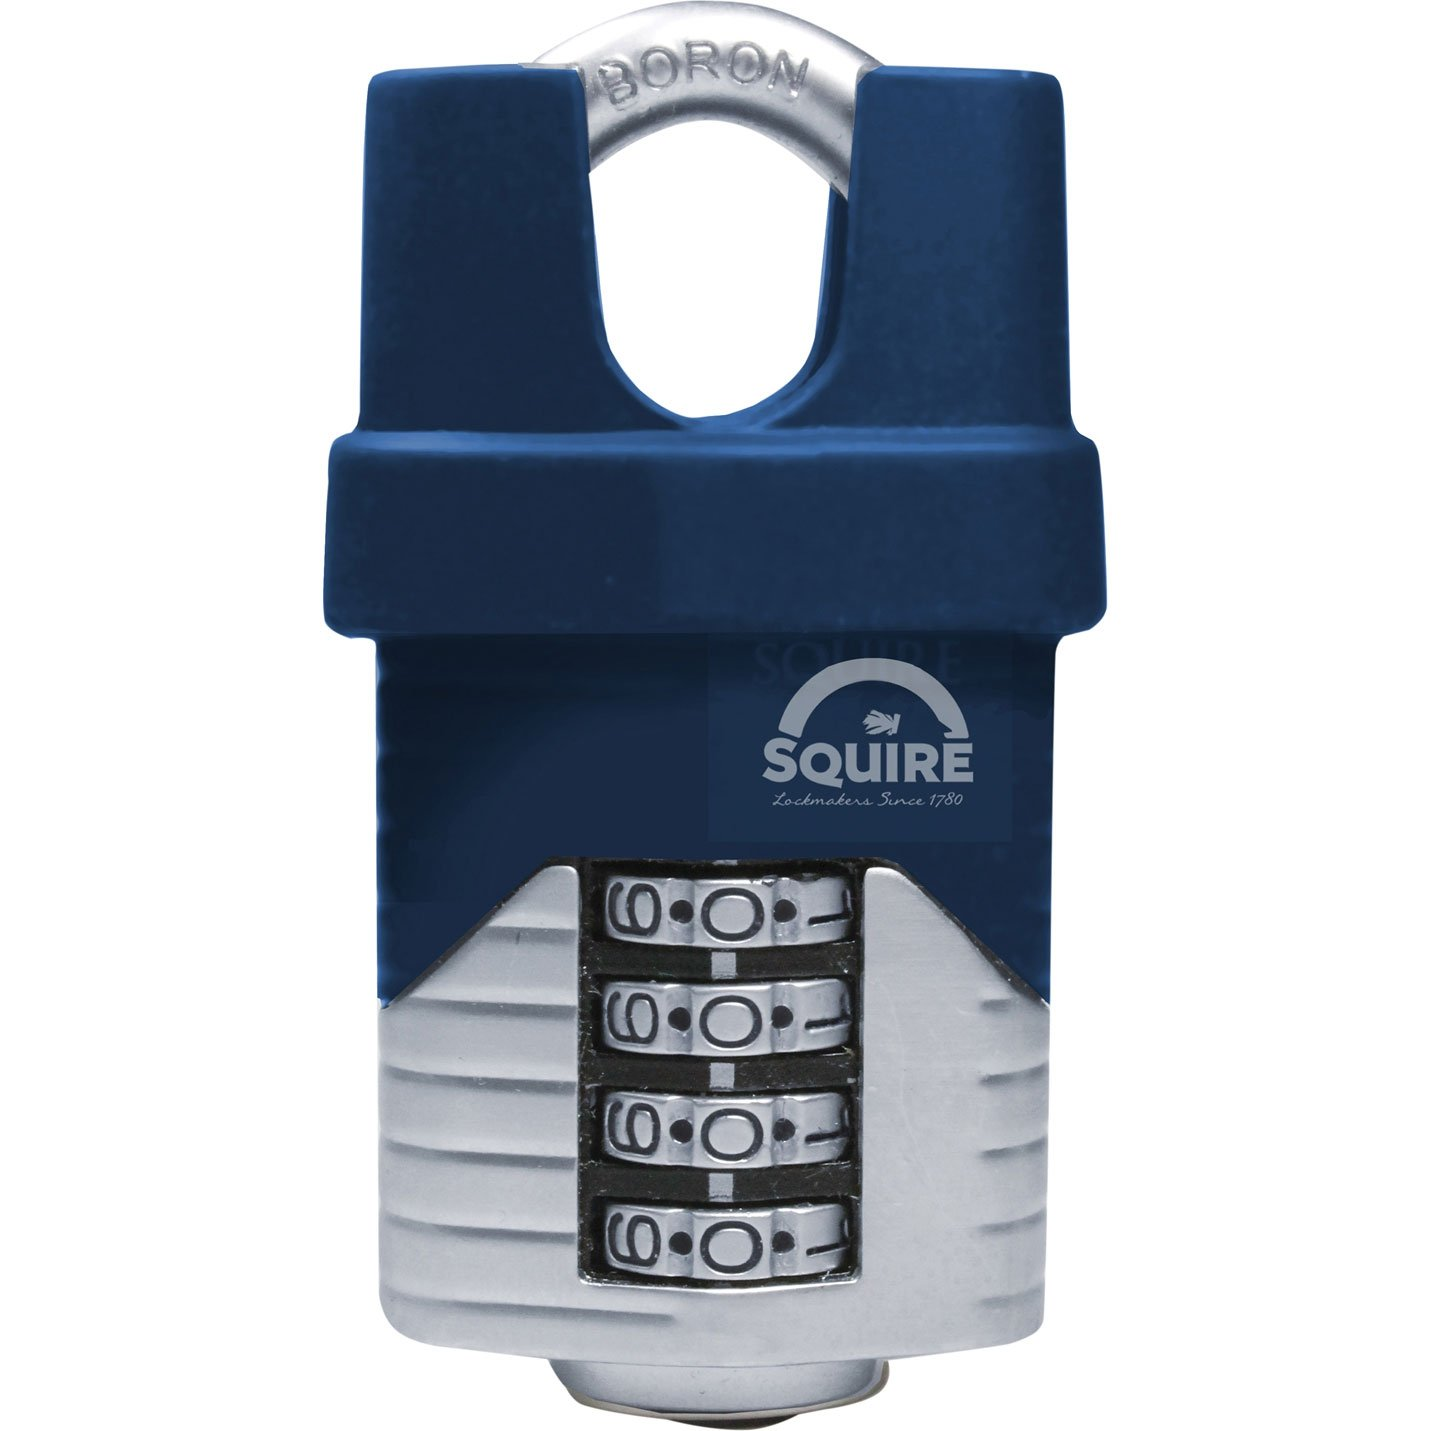 Henry Squire Vulcan 4 Wheel Closed Shackle Combination Padlock, 50 mm Length Henry Squire & Sons Ltd. VULCAN COMBI 50CS